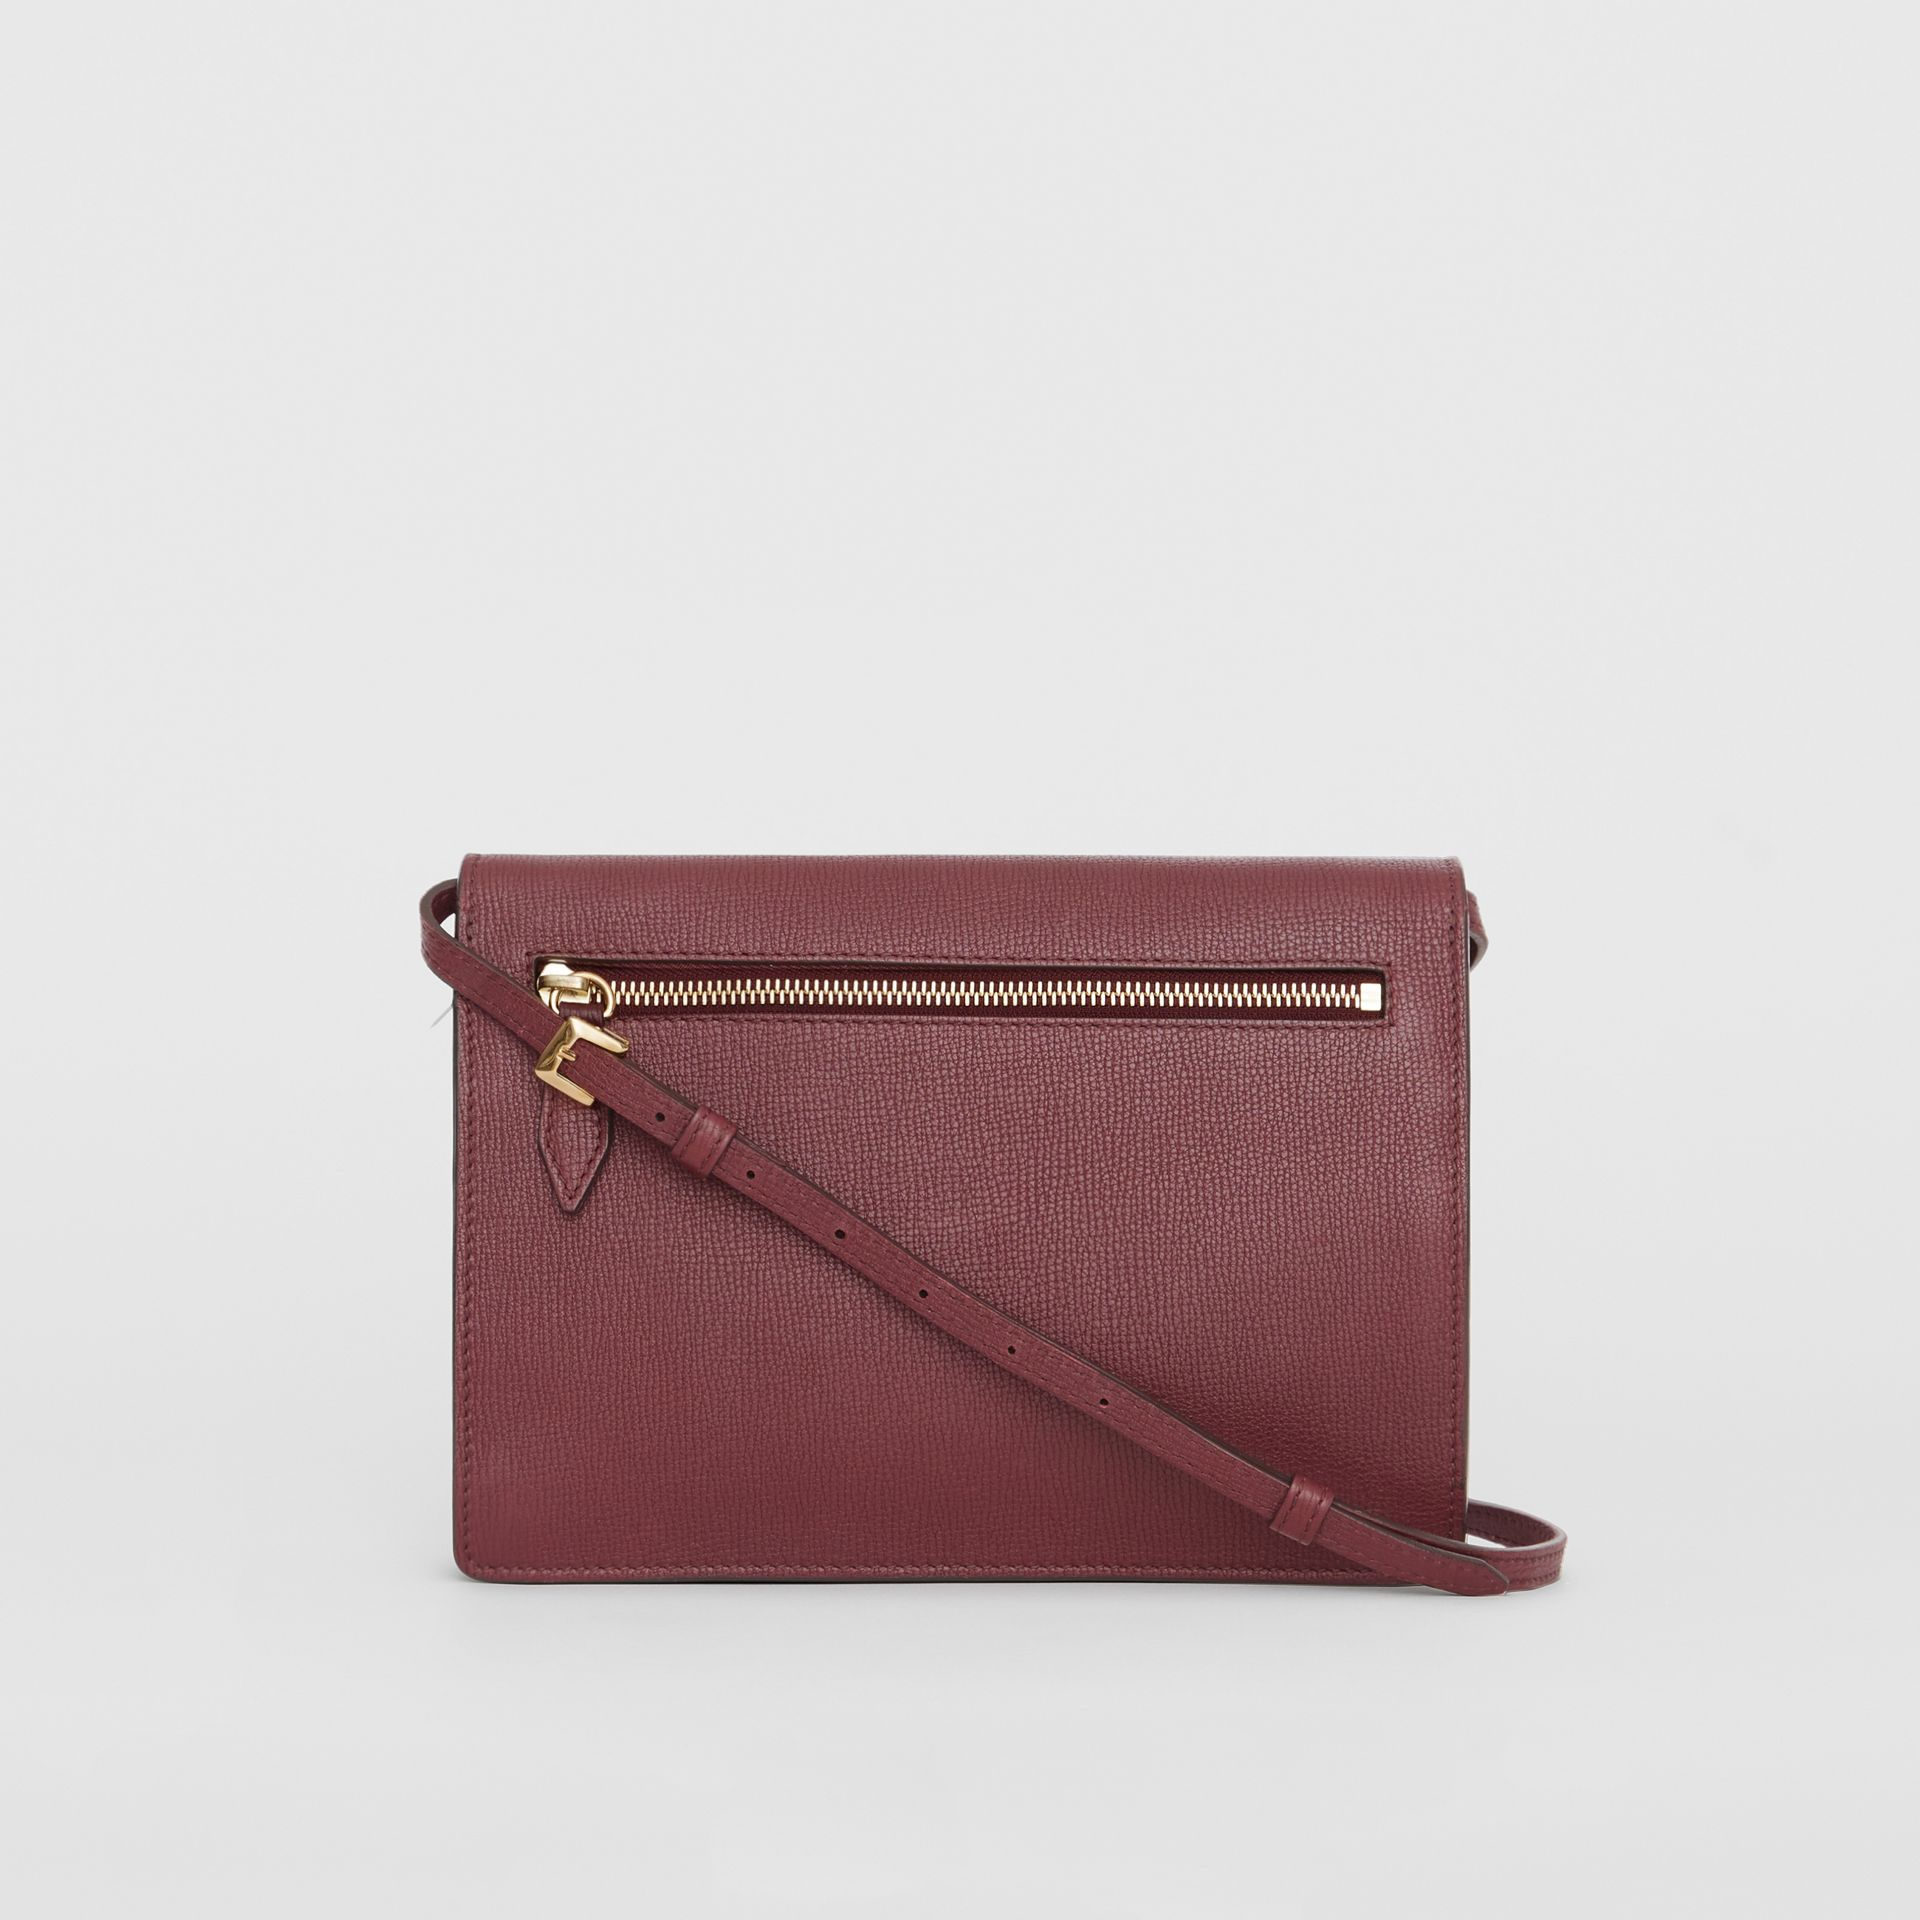 Small Leather and House Check Crossbody Bag in Mahogany Red - Women | Burberry Australia - gallery image 7